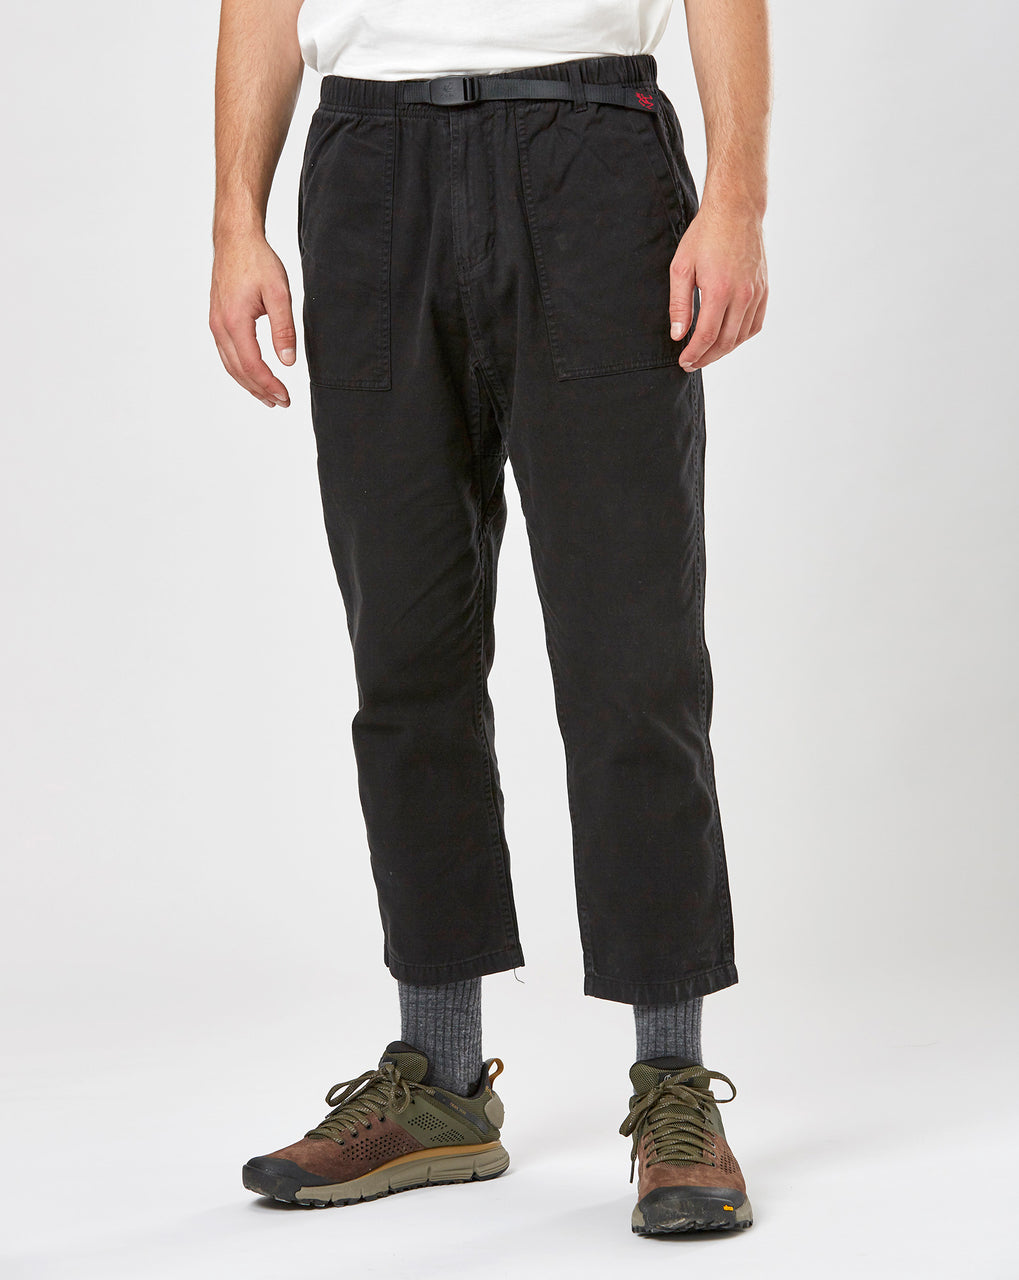 Copy of Gramicci Loose Tapered Pants (Navy)